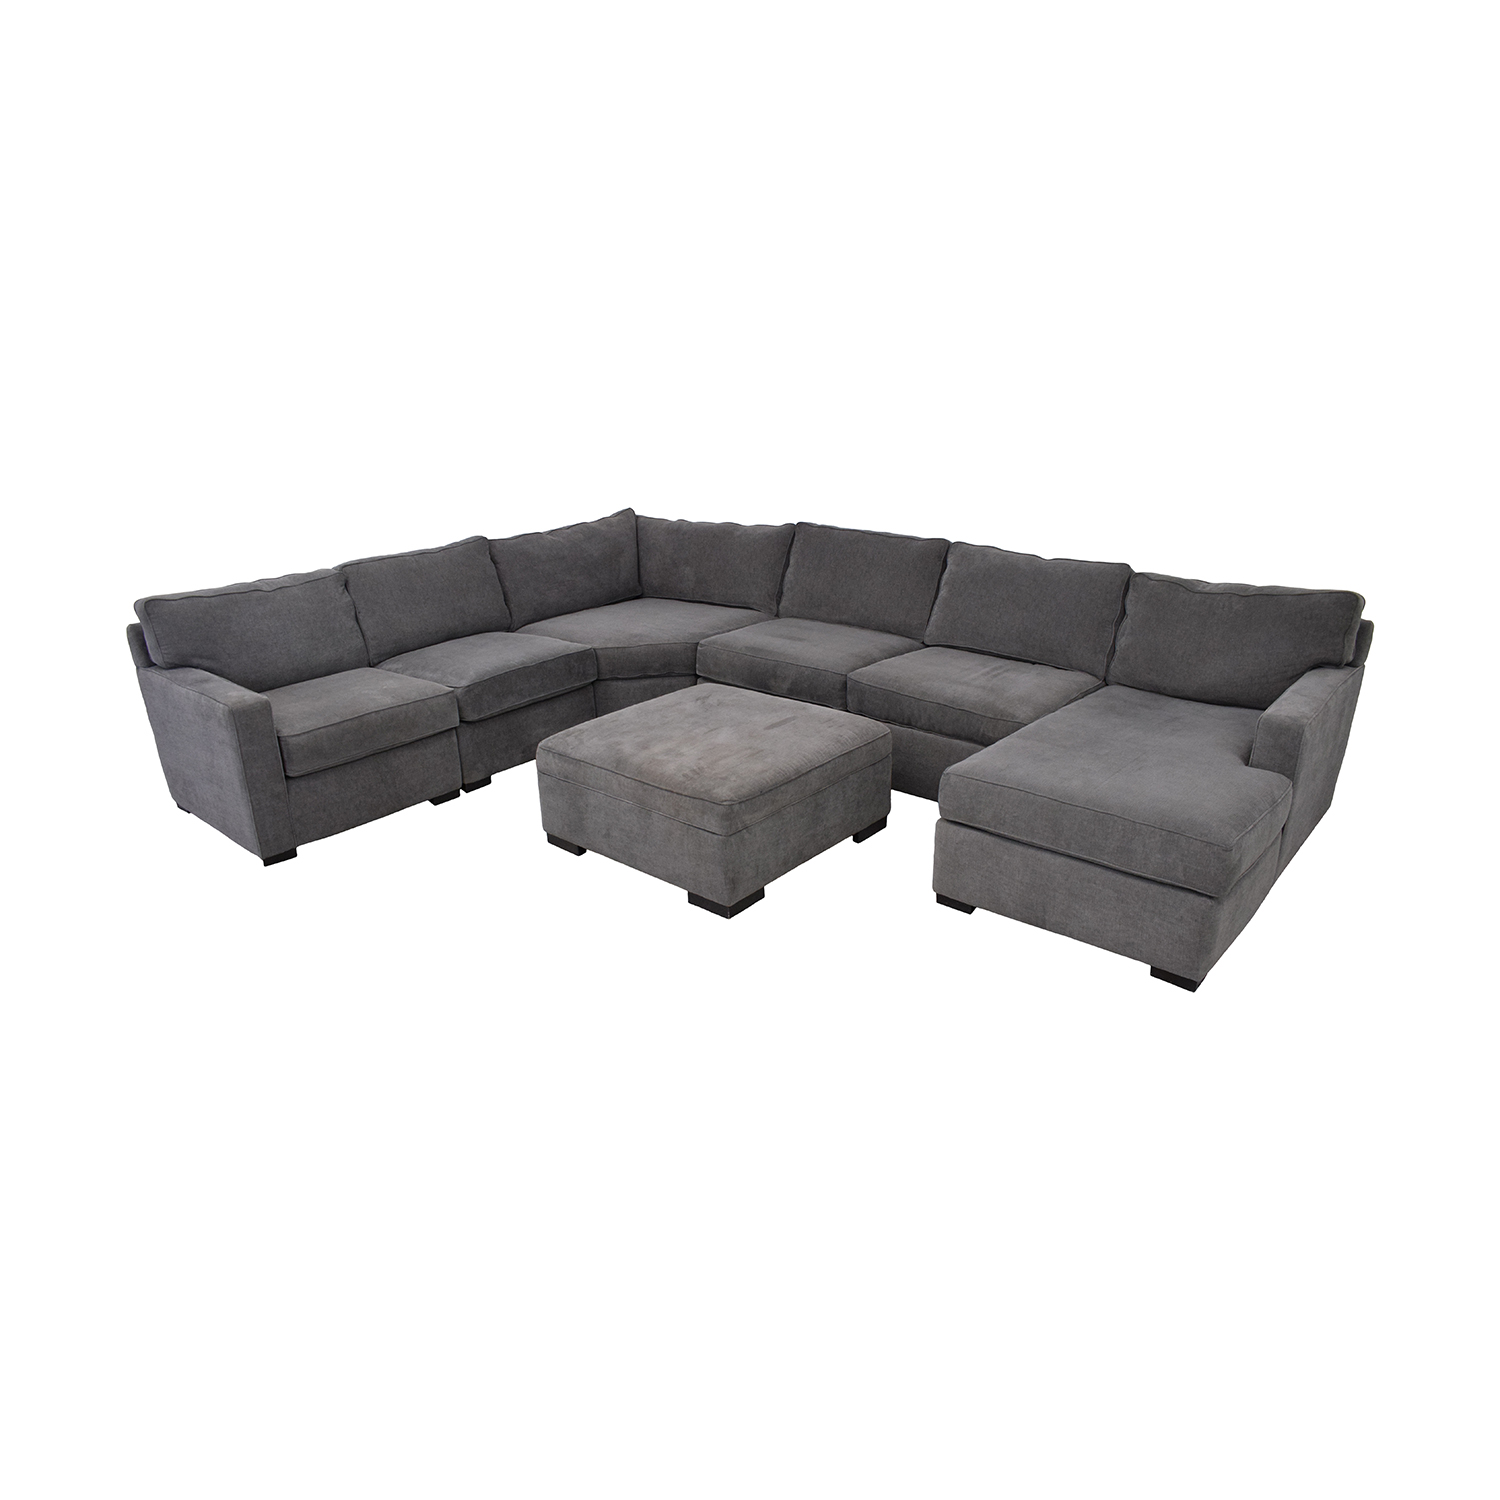 Macy's Macy's Radley Fabric 6-Piece Chaise Sectional Sofa with Corner Piece and Ottoman used